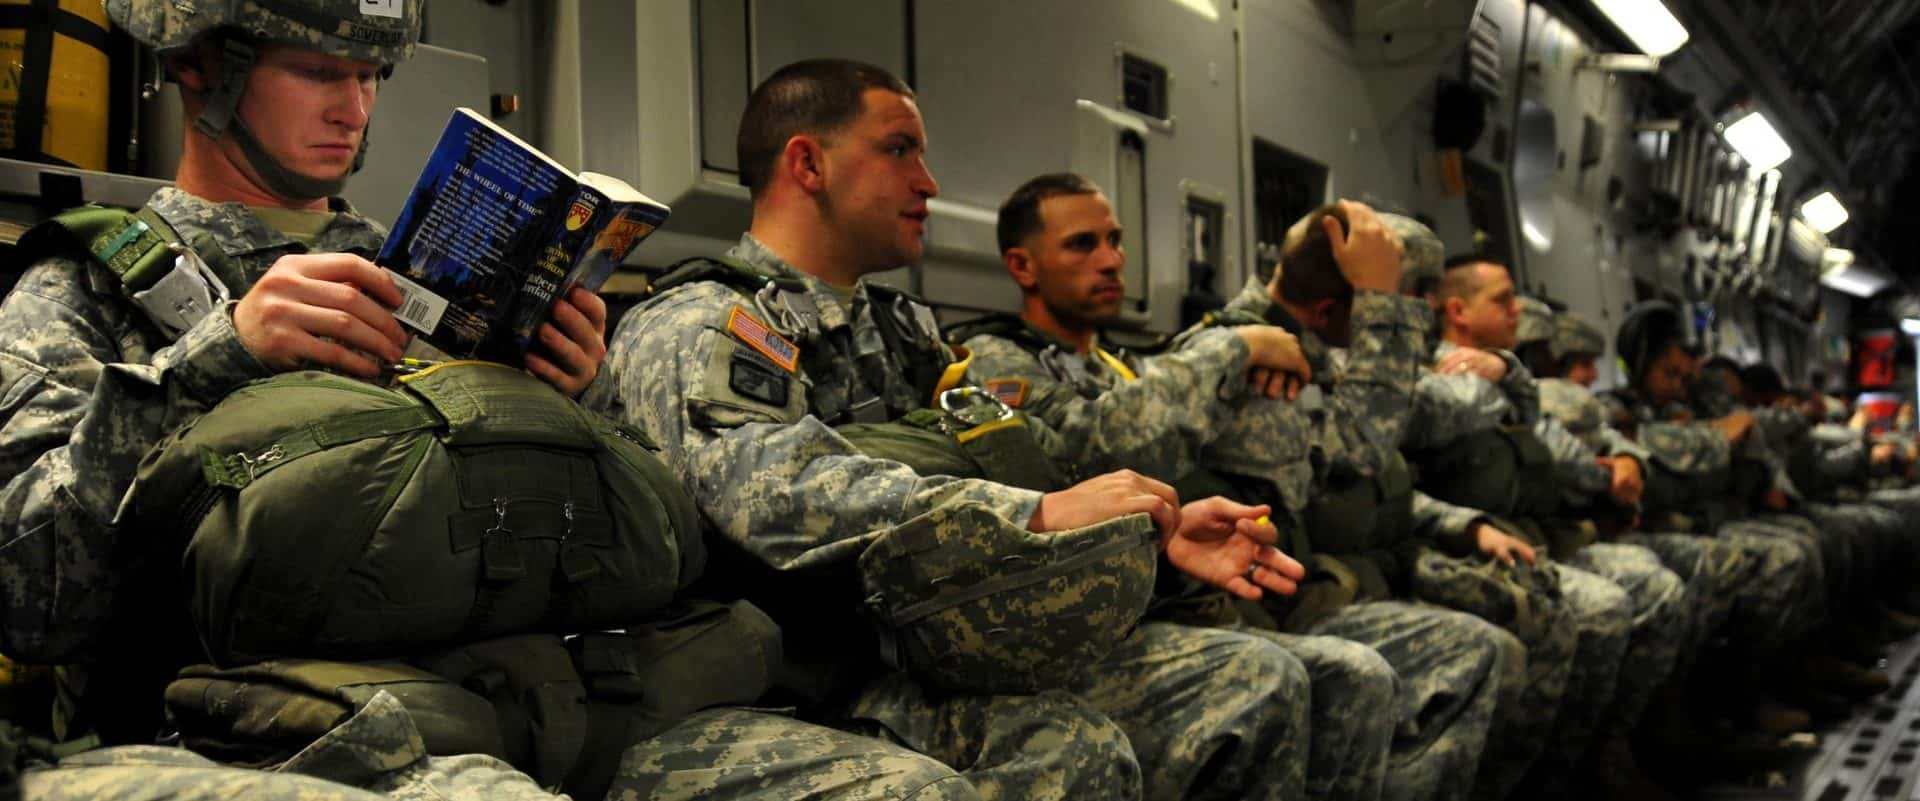 Soldiers sitting in cargo plane, waiting to jump, reading.